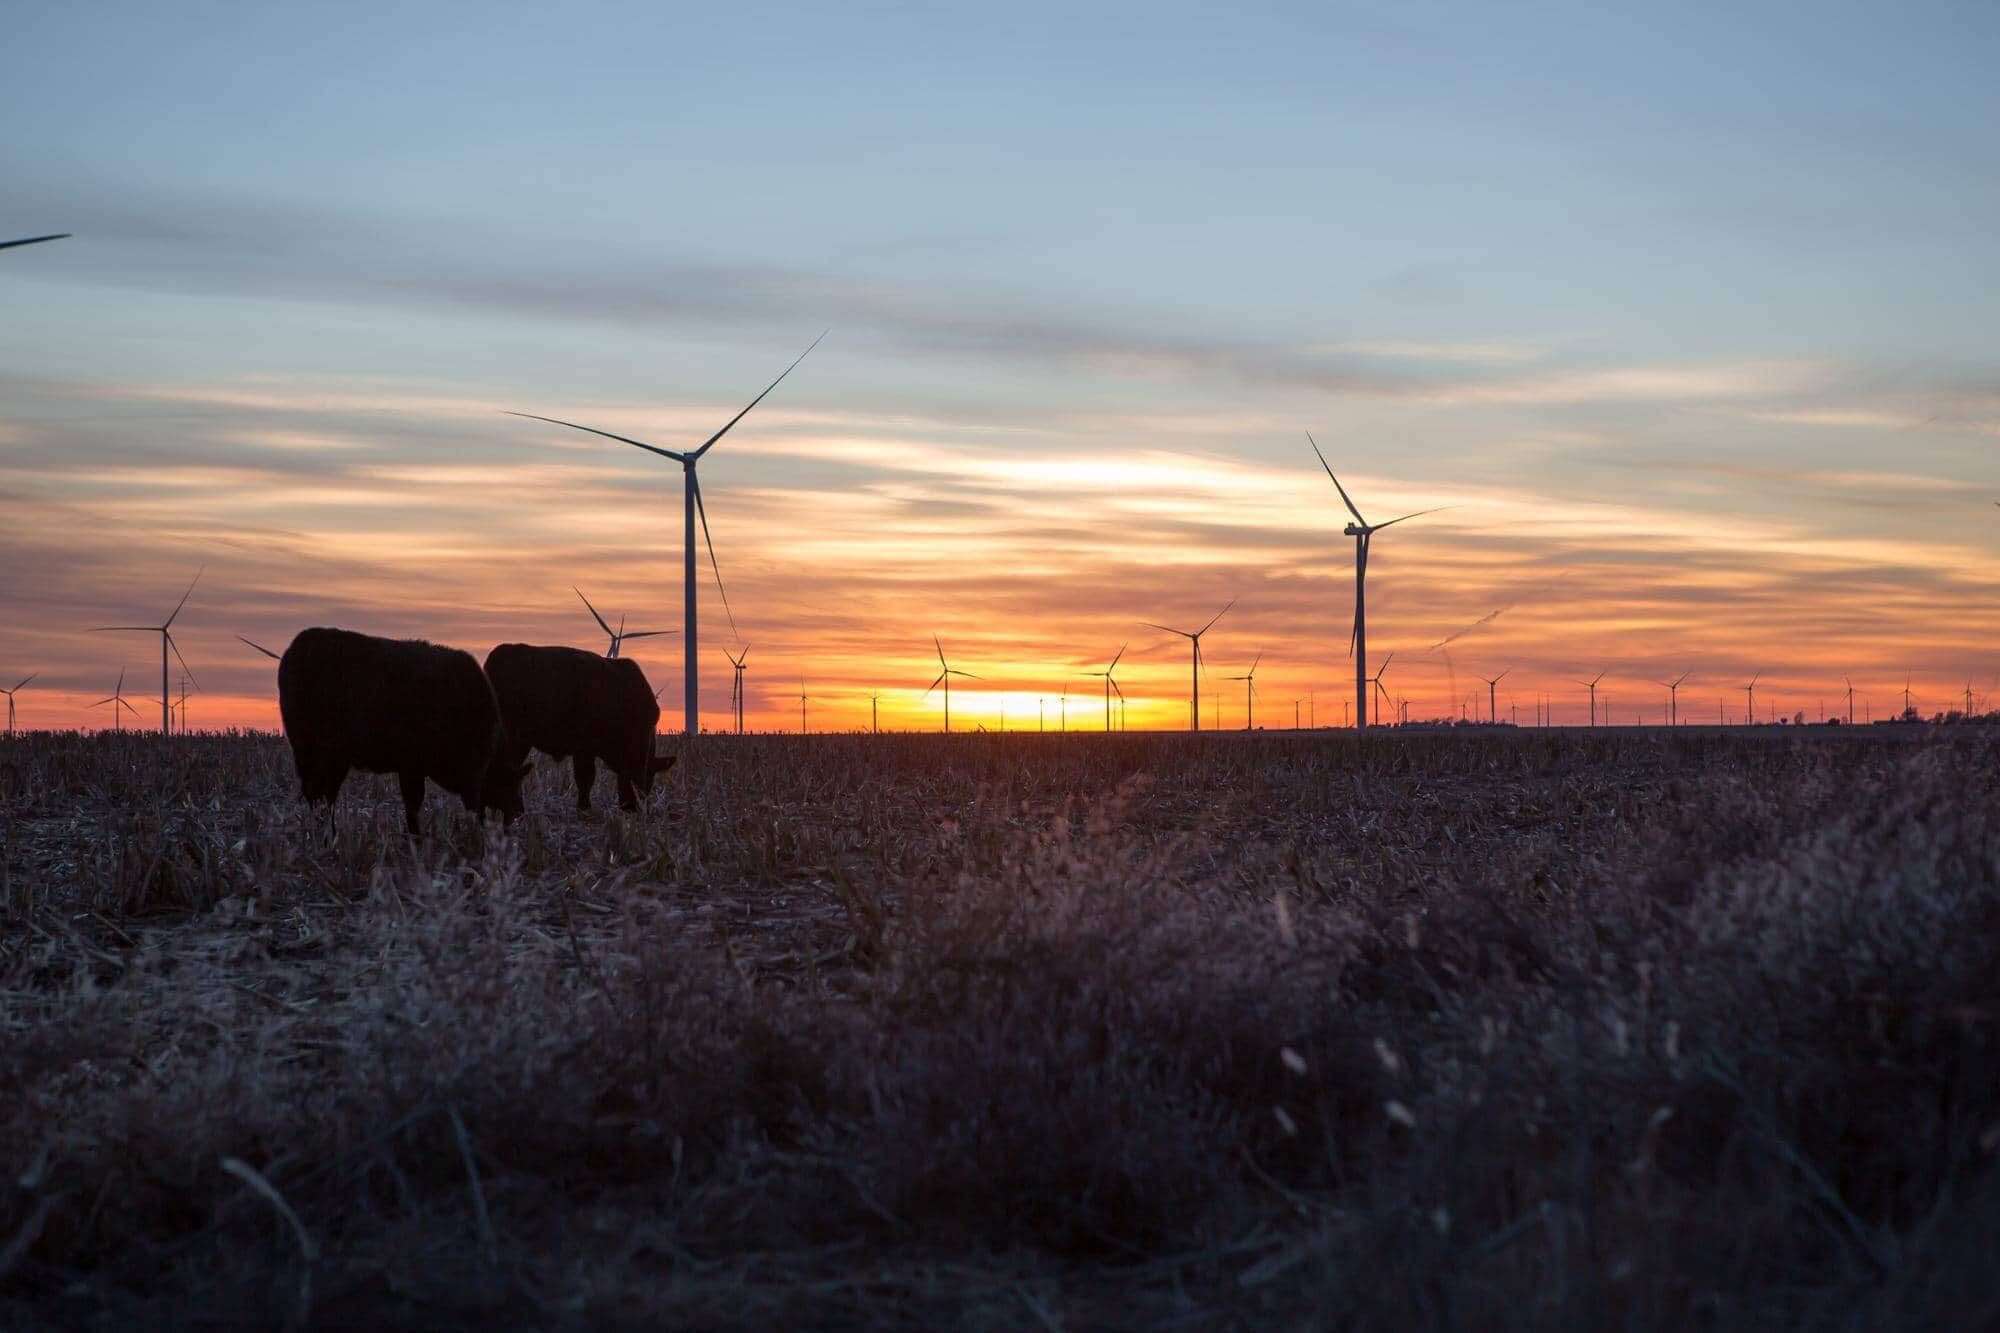 cimarron-bend-wind-farm-kansas Enel's 400 MW Cimarron Bend Wind Farm Powers Up In Kansas